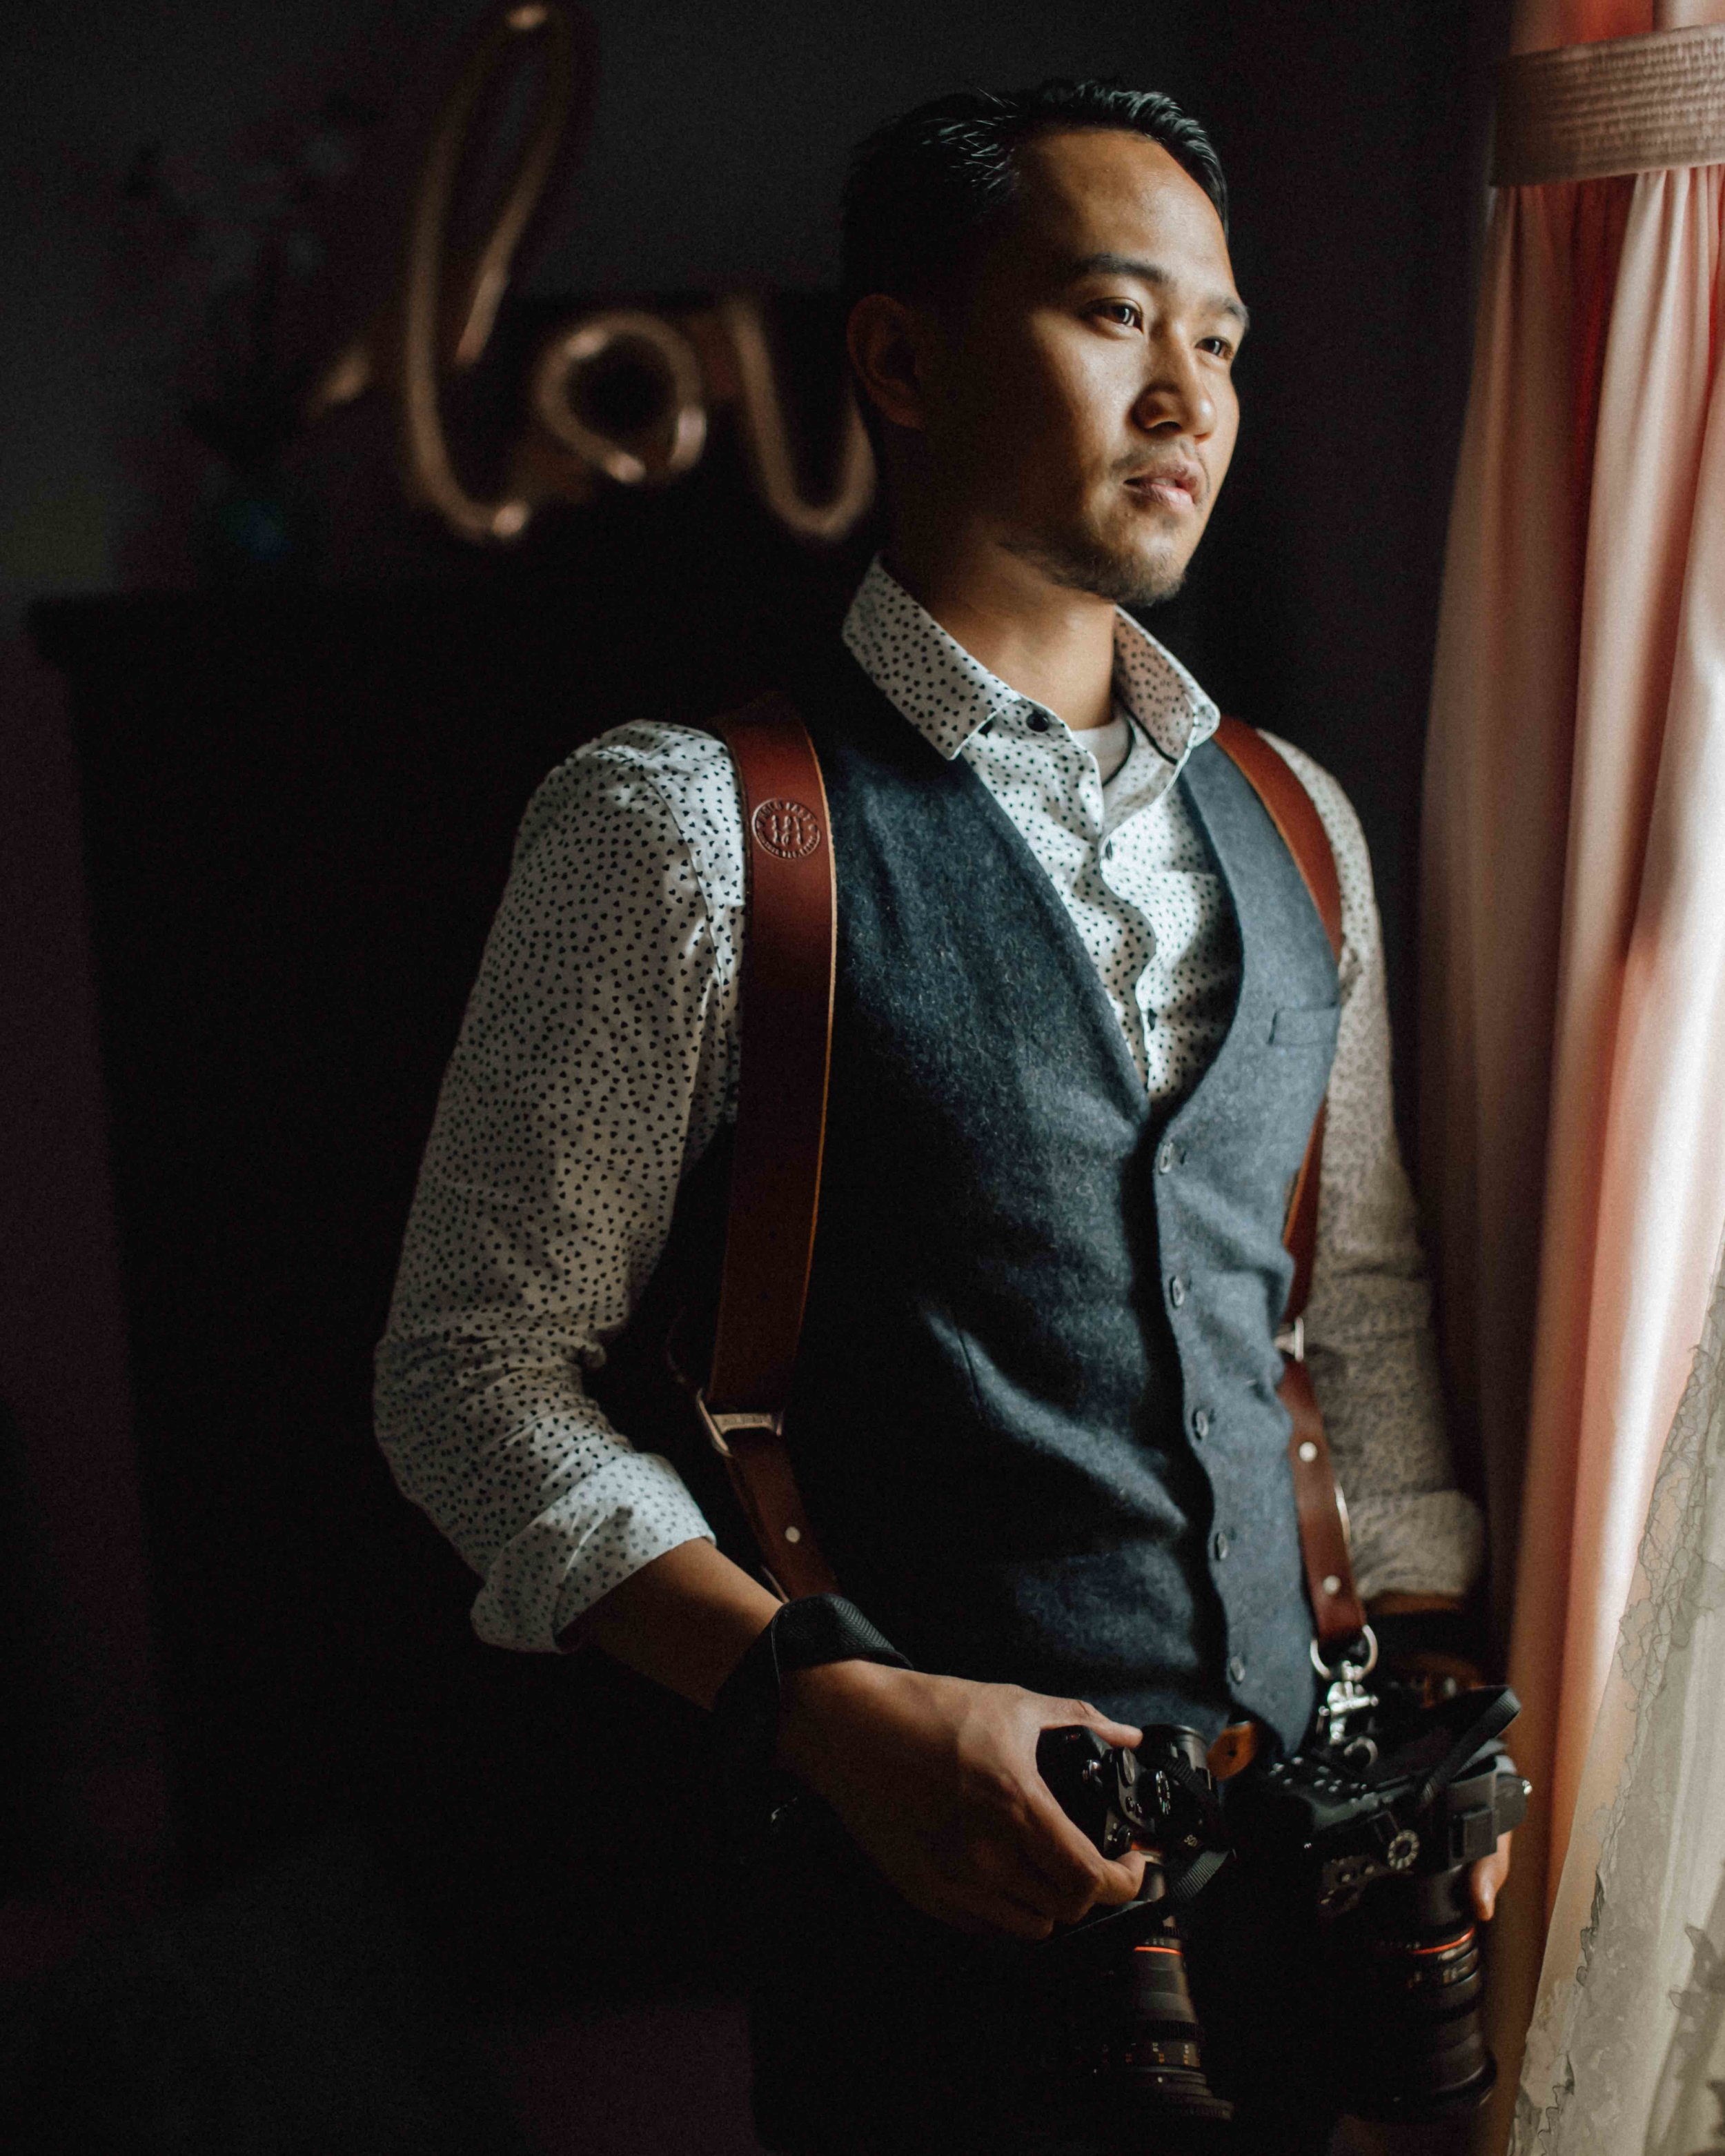 Hello there, - I'm Aaron and I have a love for love. An urge to capture and learn from the purest of emotions. A drive to craft your love story into a fine art wedding film and share your version of love with the world.I film your wedding storiesAnd write about that love